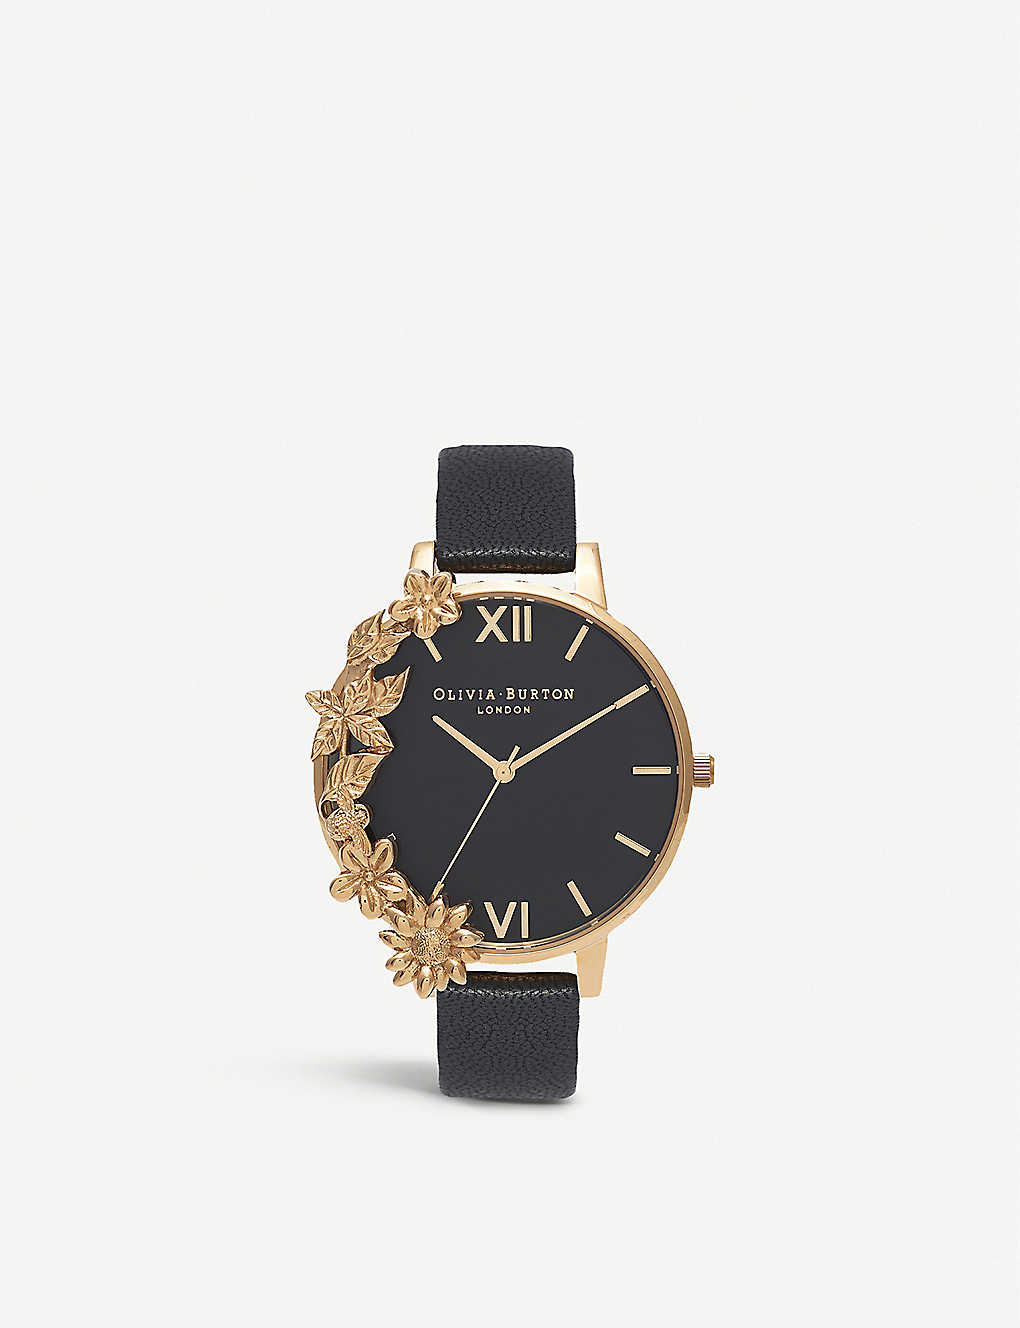 OLIVIA BURTON: Gold and leather watch